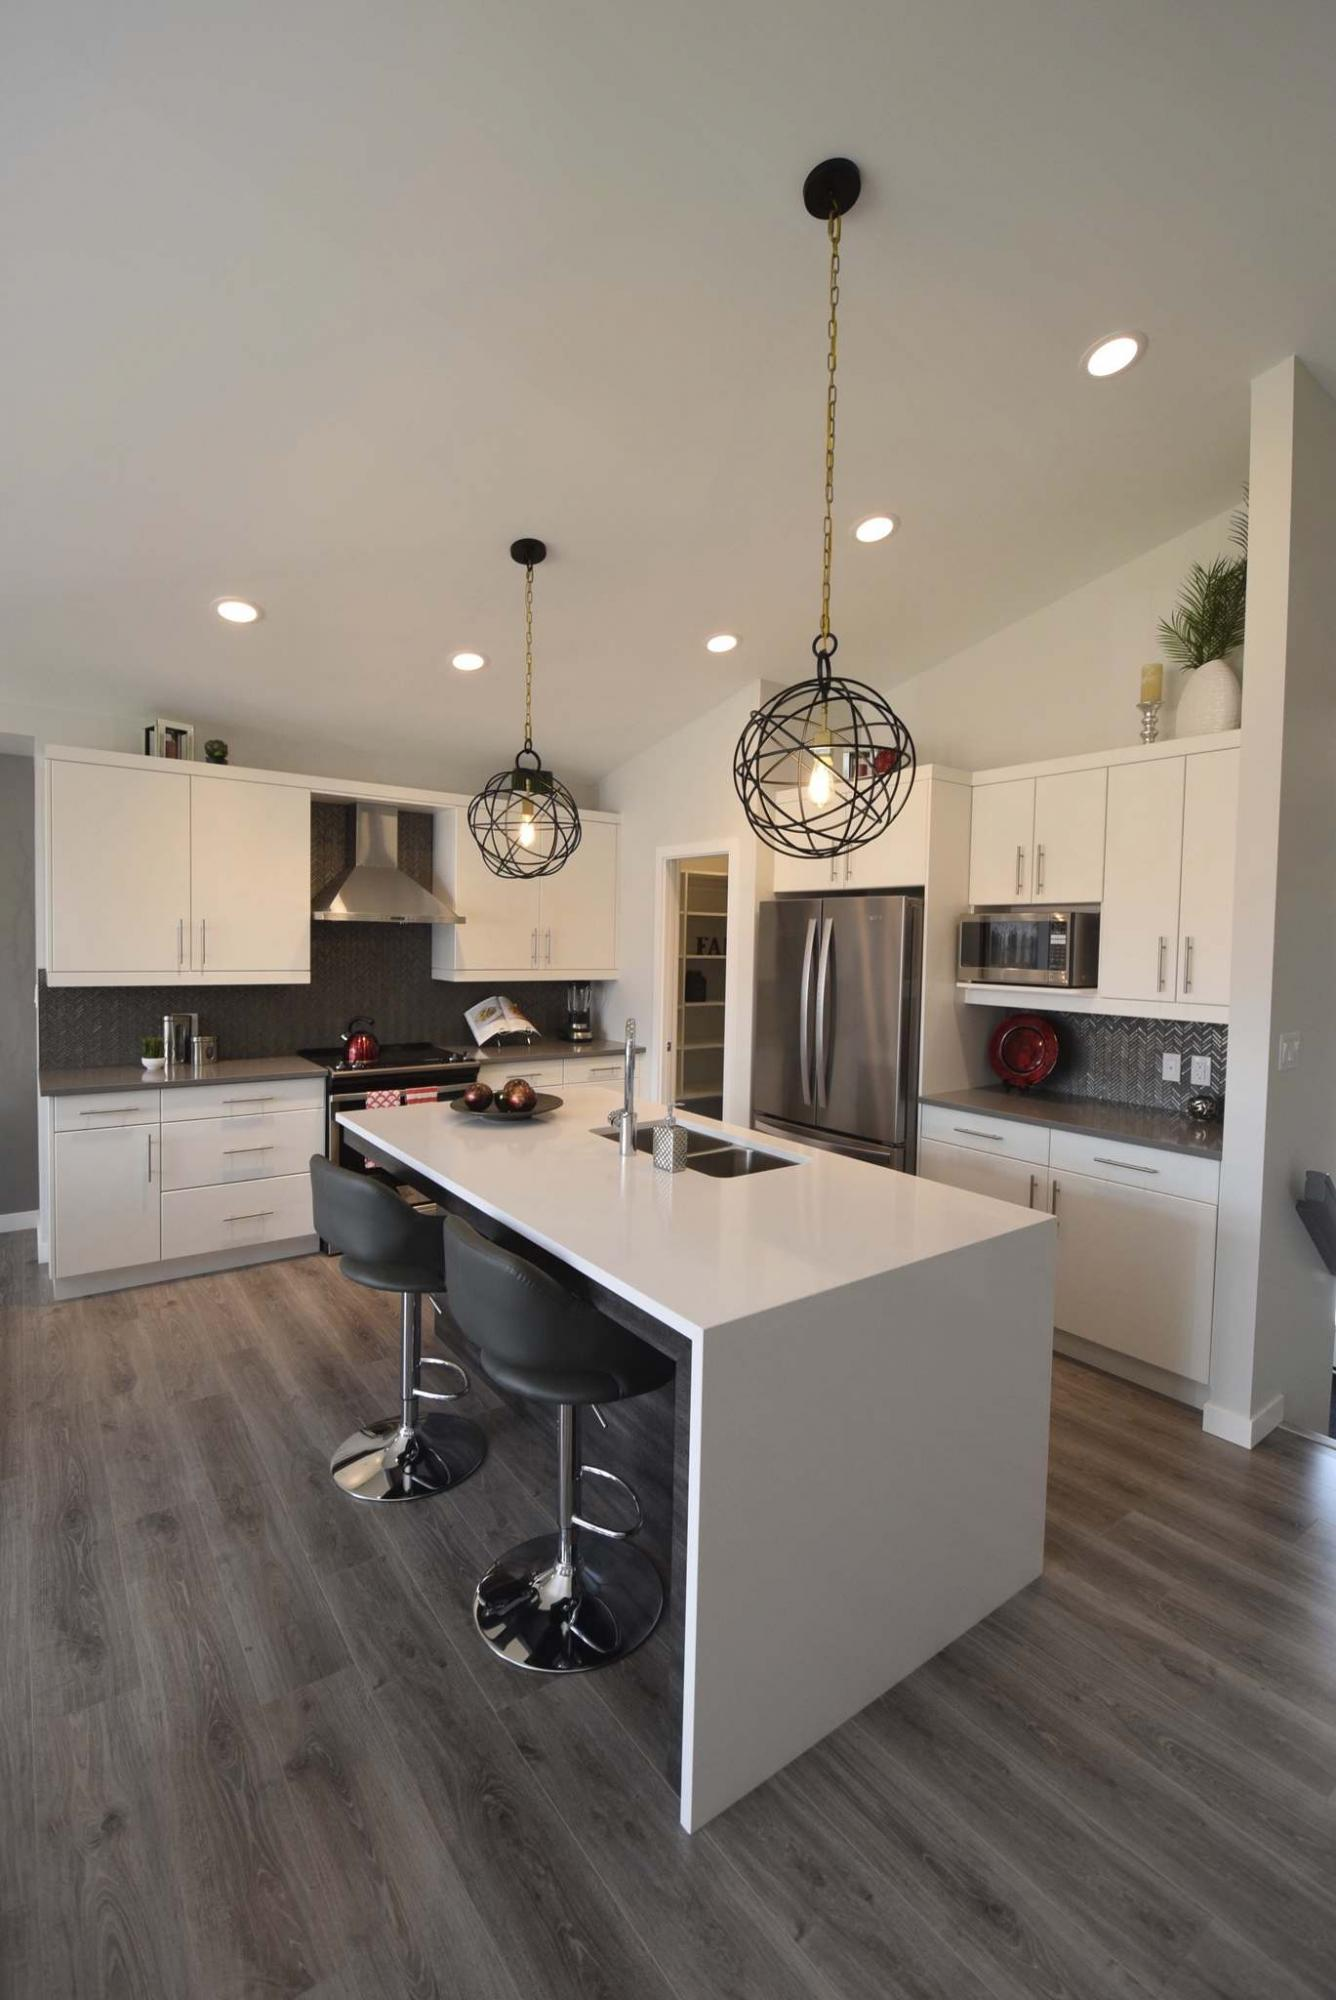 <p>Todd Lewys / Winnipeg Free Press files</p><p>This year's Fall Parade of Homes features more than 130 show homes in 38 communities.</p>